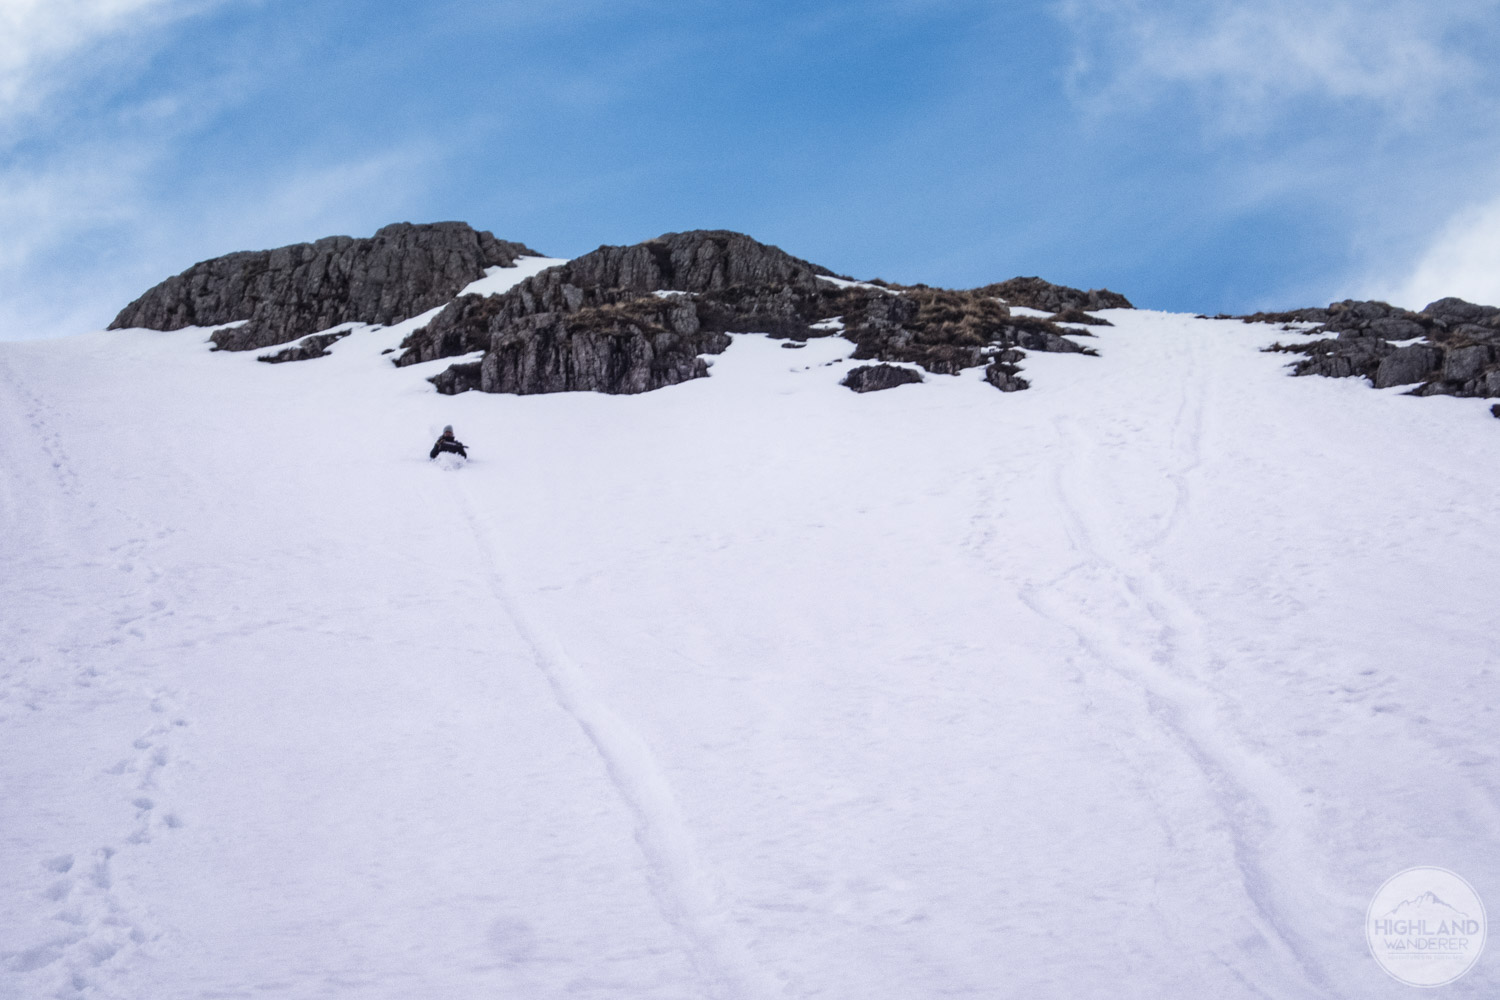 The quickest way back to Glen Coe? Glissading of course!